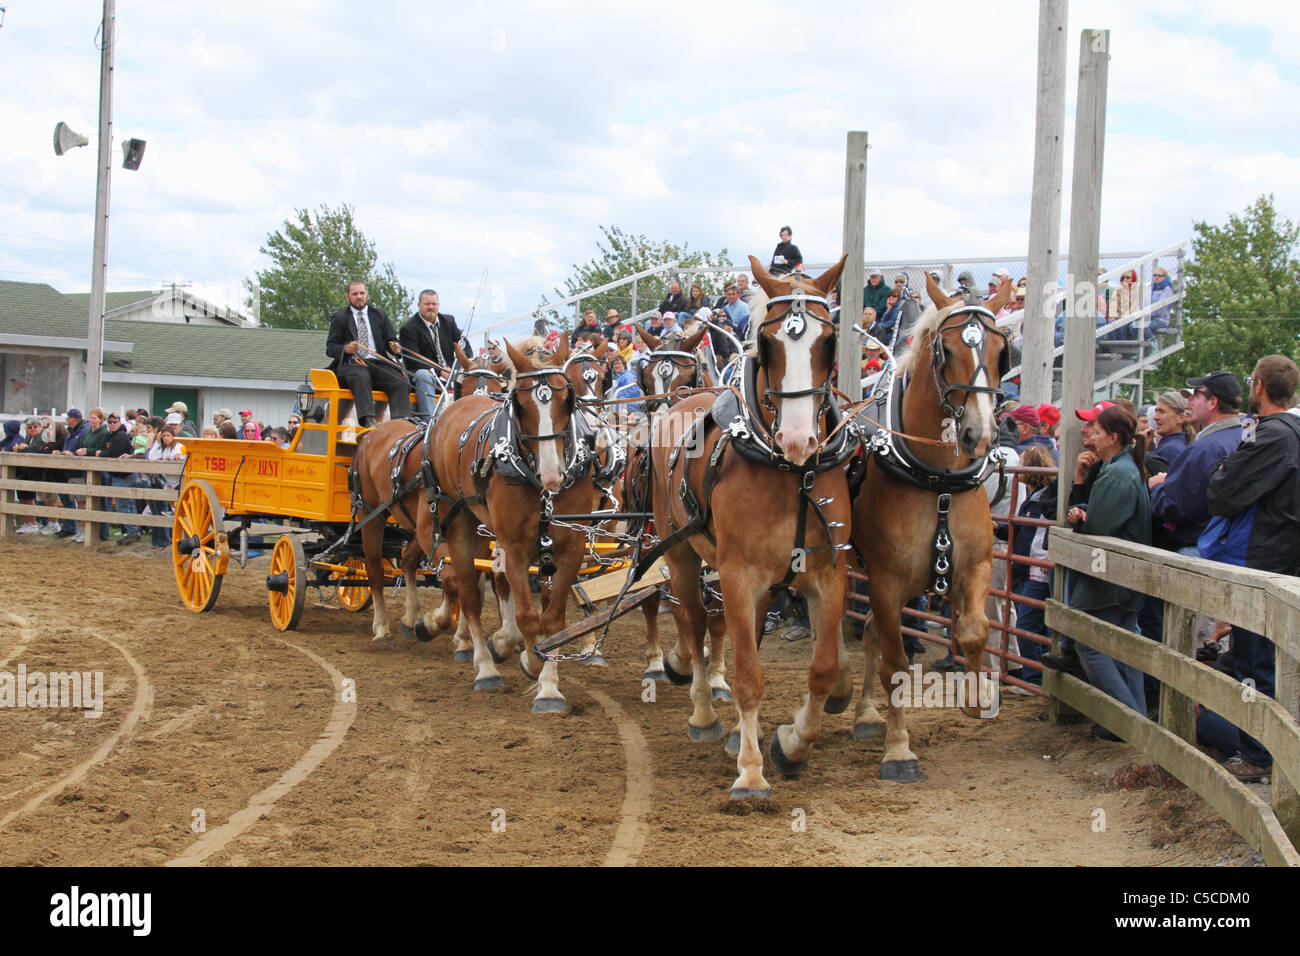 Draft Horses Pulling A Wagon. Workhorses with harnesses. - Stock Image